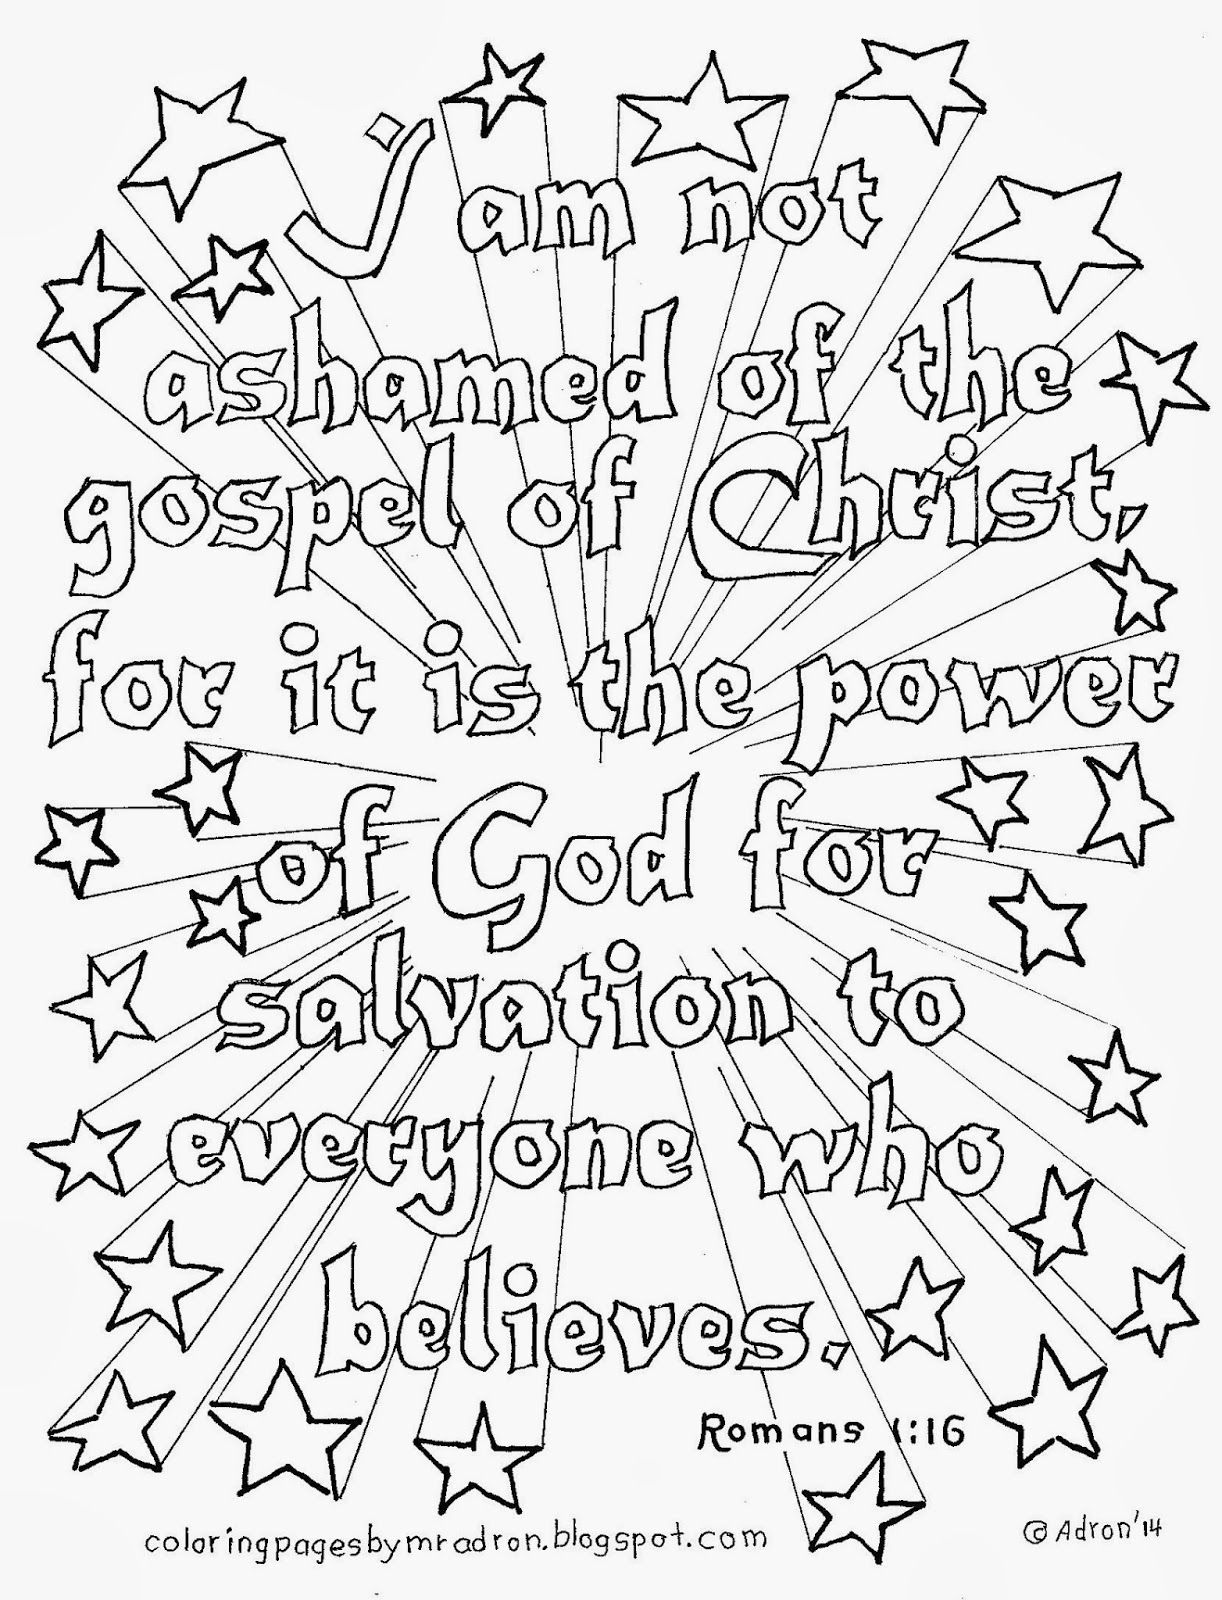 Free printable coloring pages for kids bible - Free Bible Coloring Pages Bible Free Christian Coloring Pages Free Christian Coloring Pages Colors Free Bible Coloring Pages Printable Free Christian